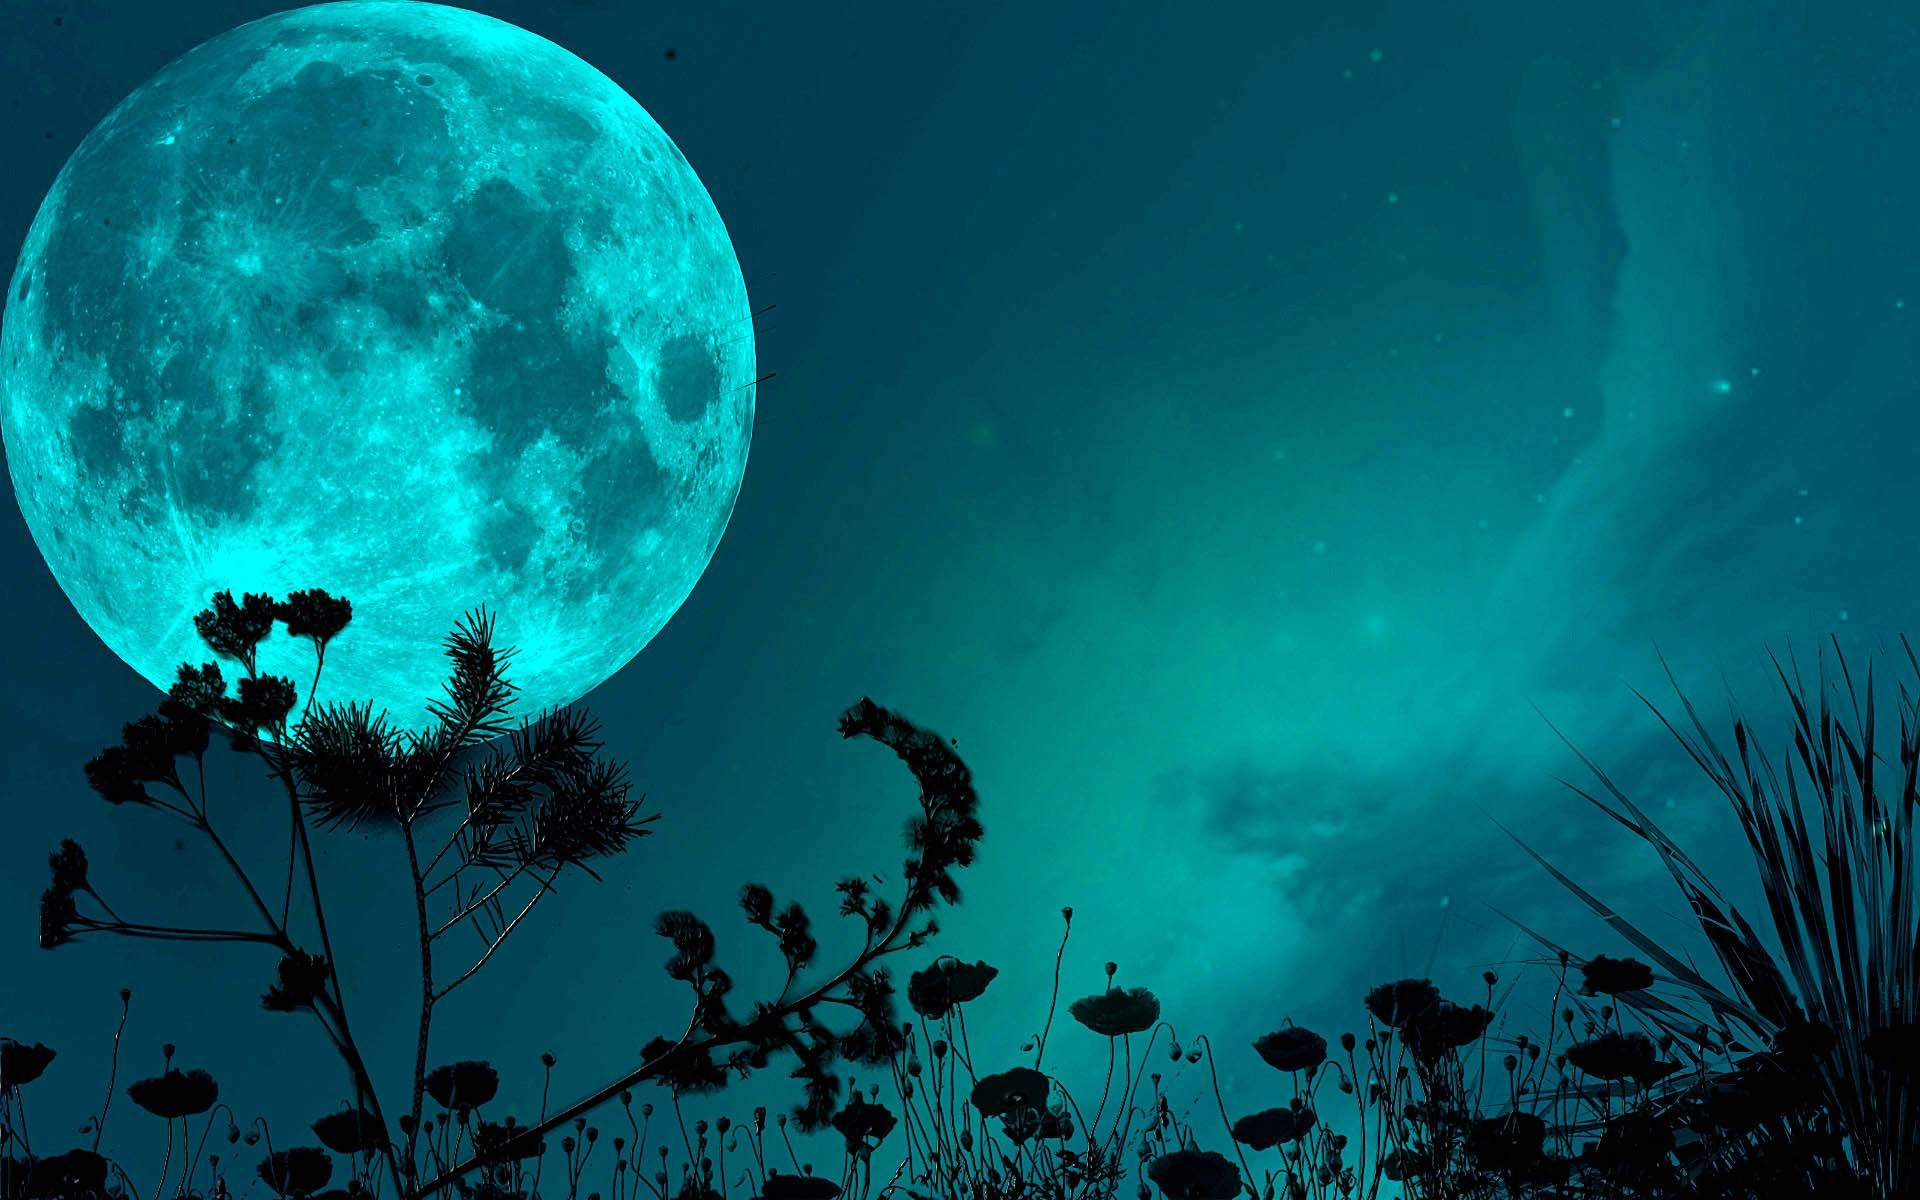 Blue Moon Wallpaper 4k 2304024 Hd Wallpaper Backgrounds Download